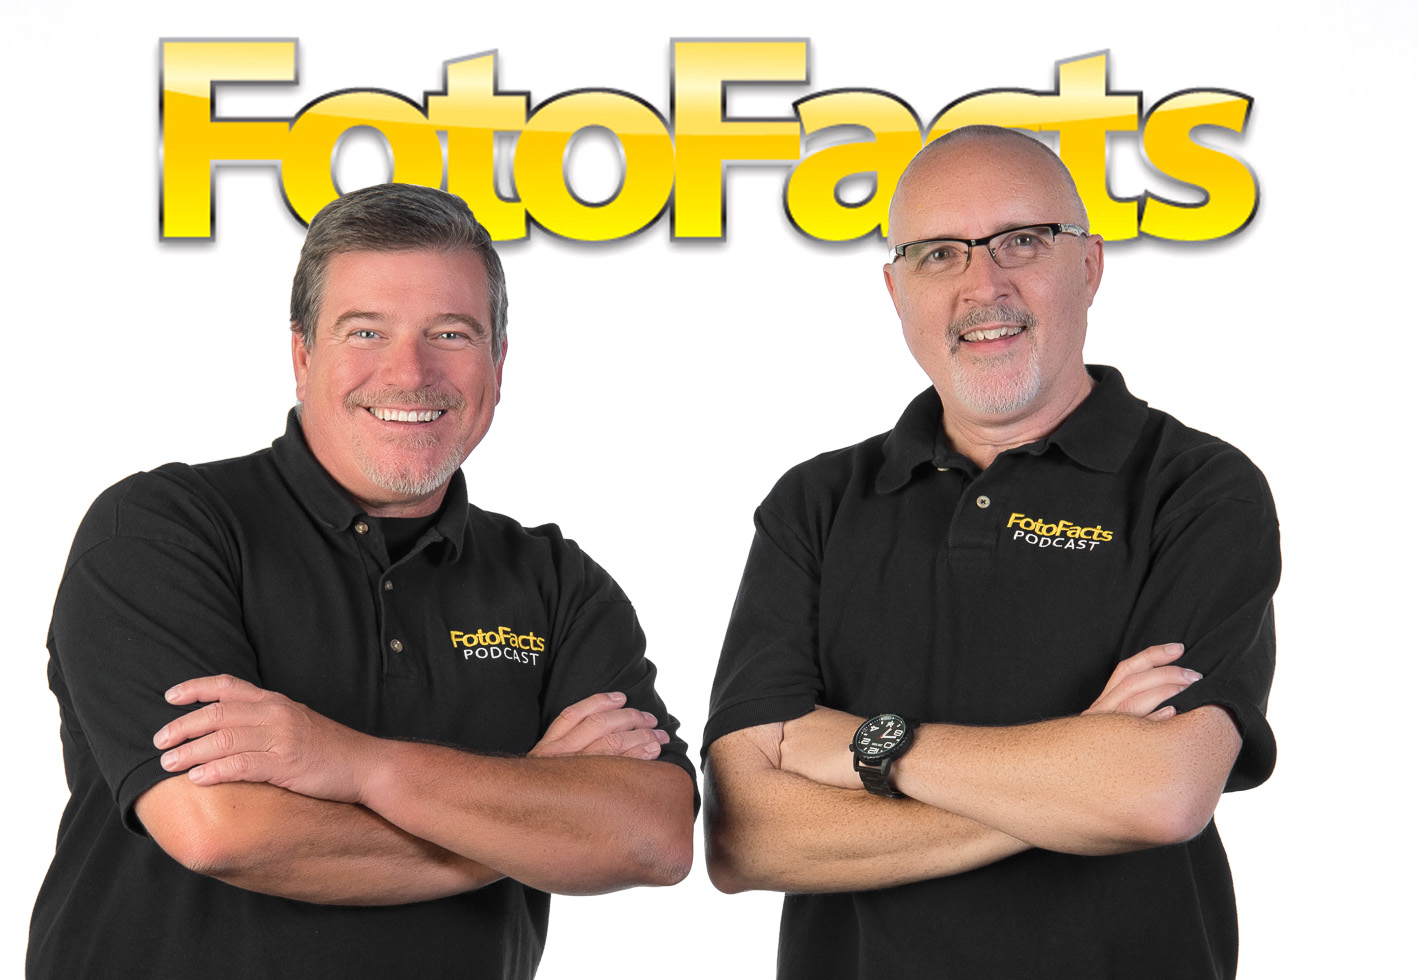 Robert Trawick and Jim Felder are the FotoFacts Twins - Listen to our podcast and find out why.